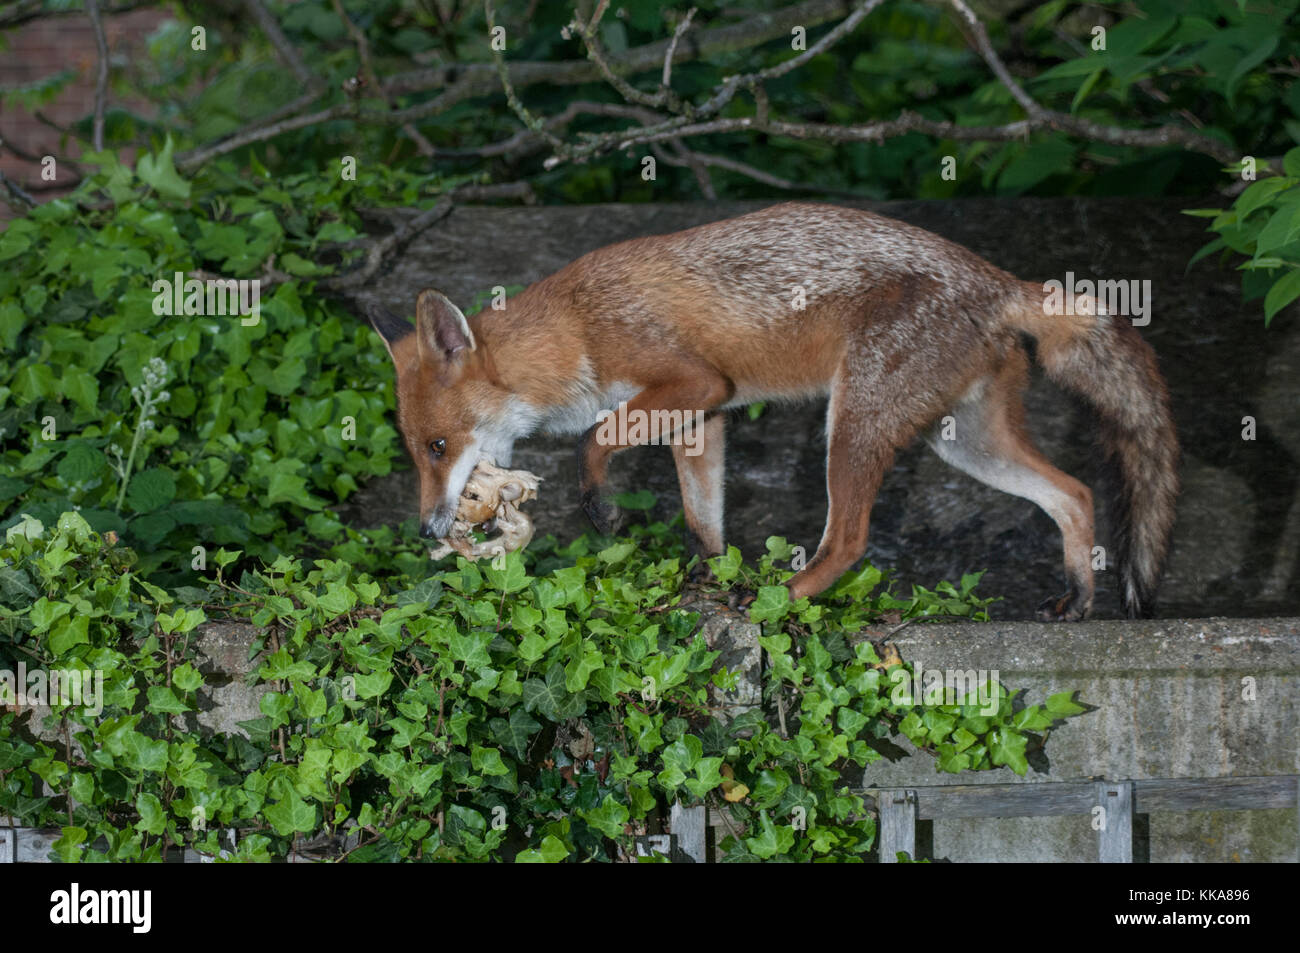 Red Fox, Vulpes vulpes, in a garden scavenging food scraps, London, United Kingdom - Stock Image